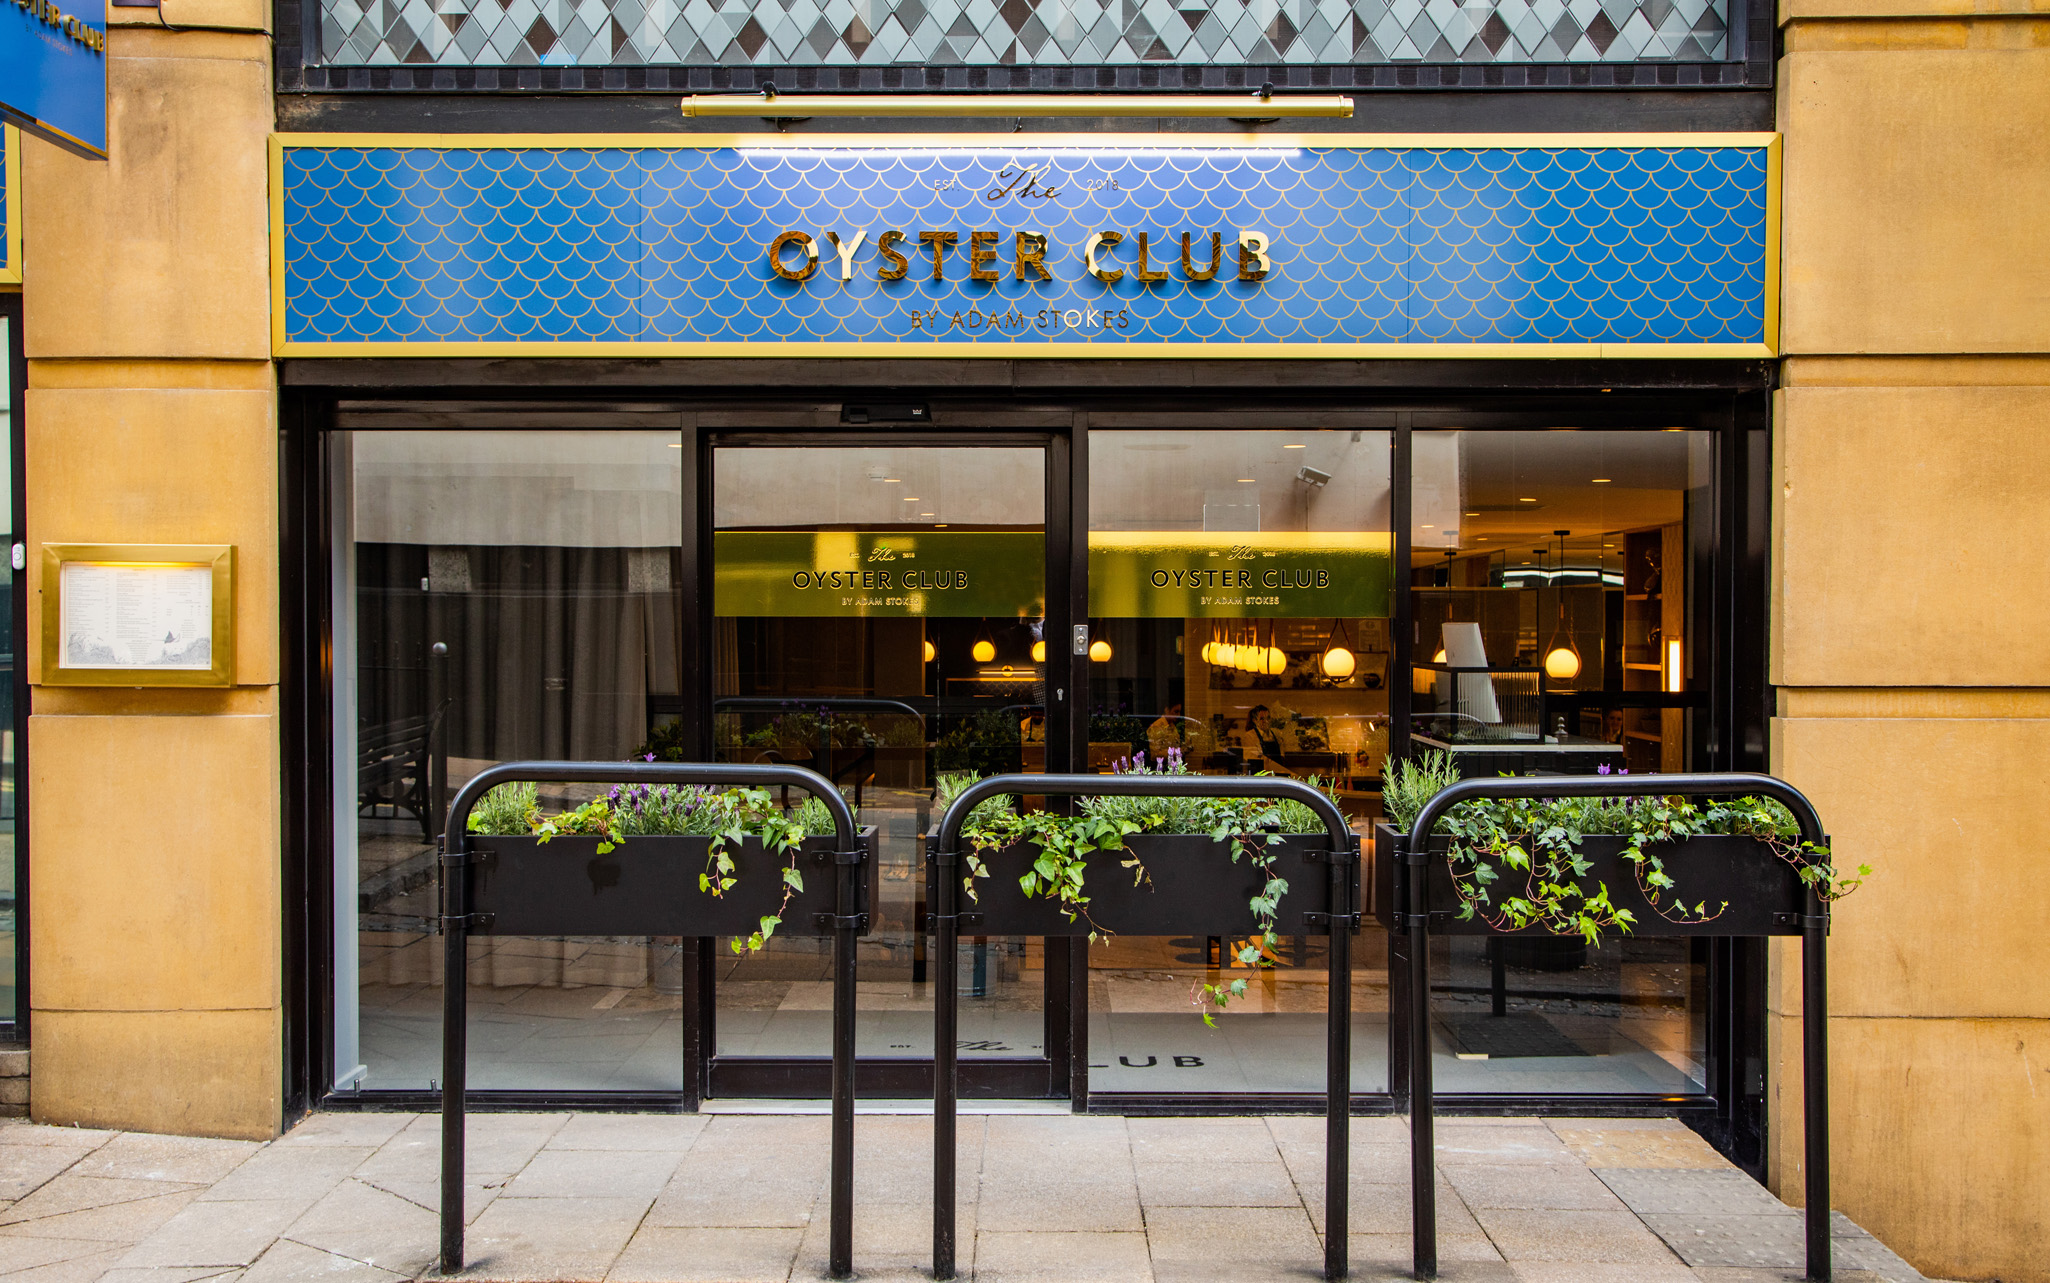 The Oyster Club By Adam Stokes A Casual And Relaxed